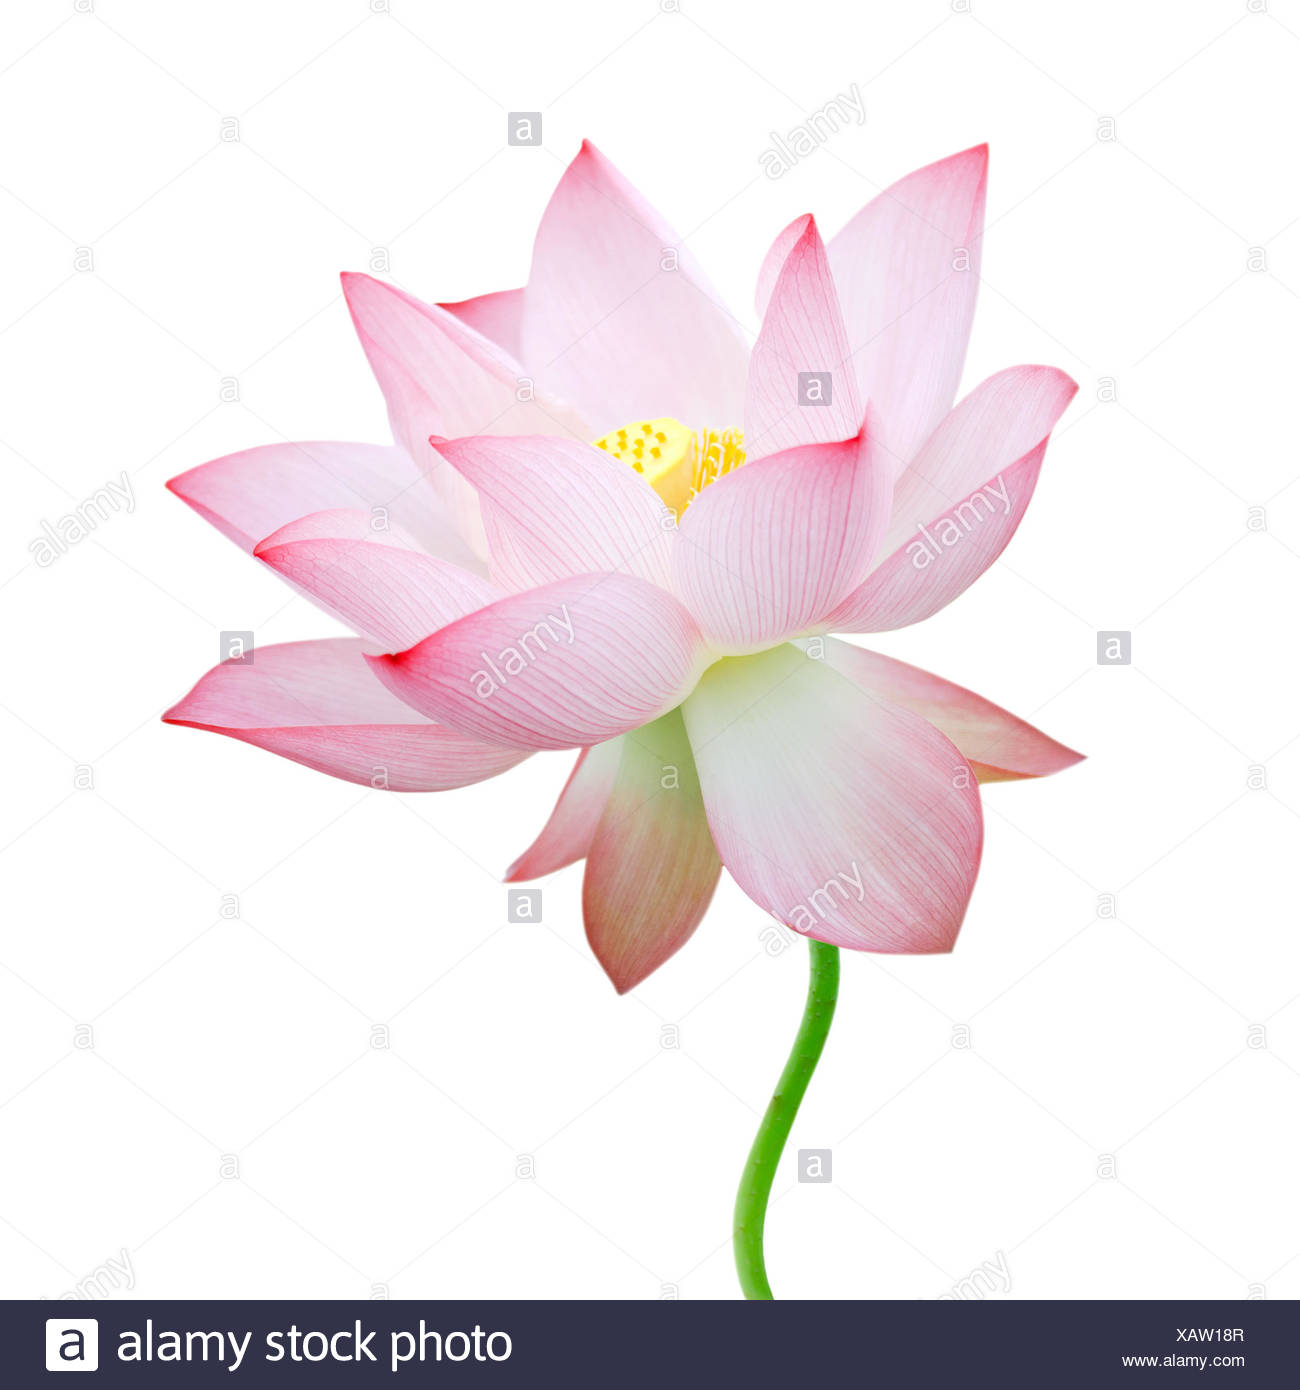 Lotus Flower Isolated On White Background Stock Photo 282062279 Alamy